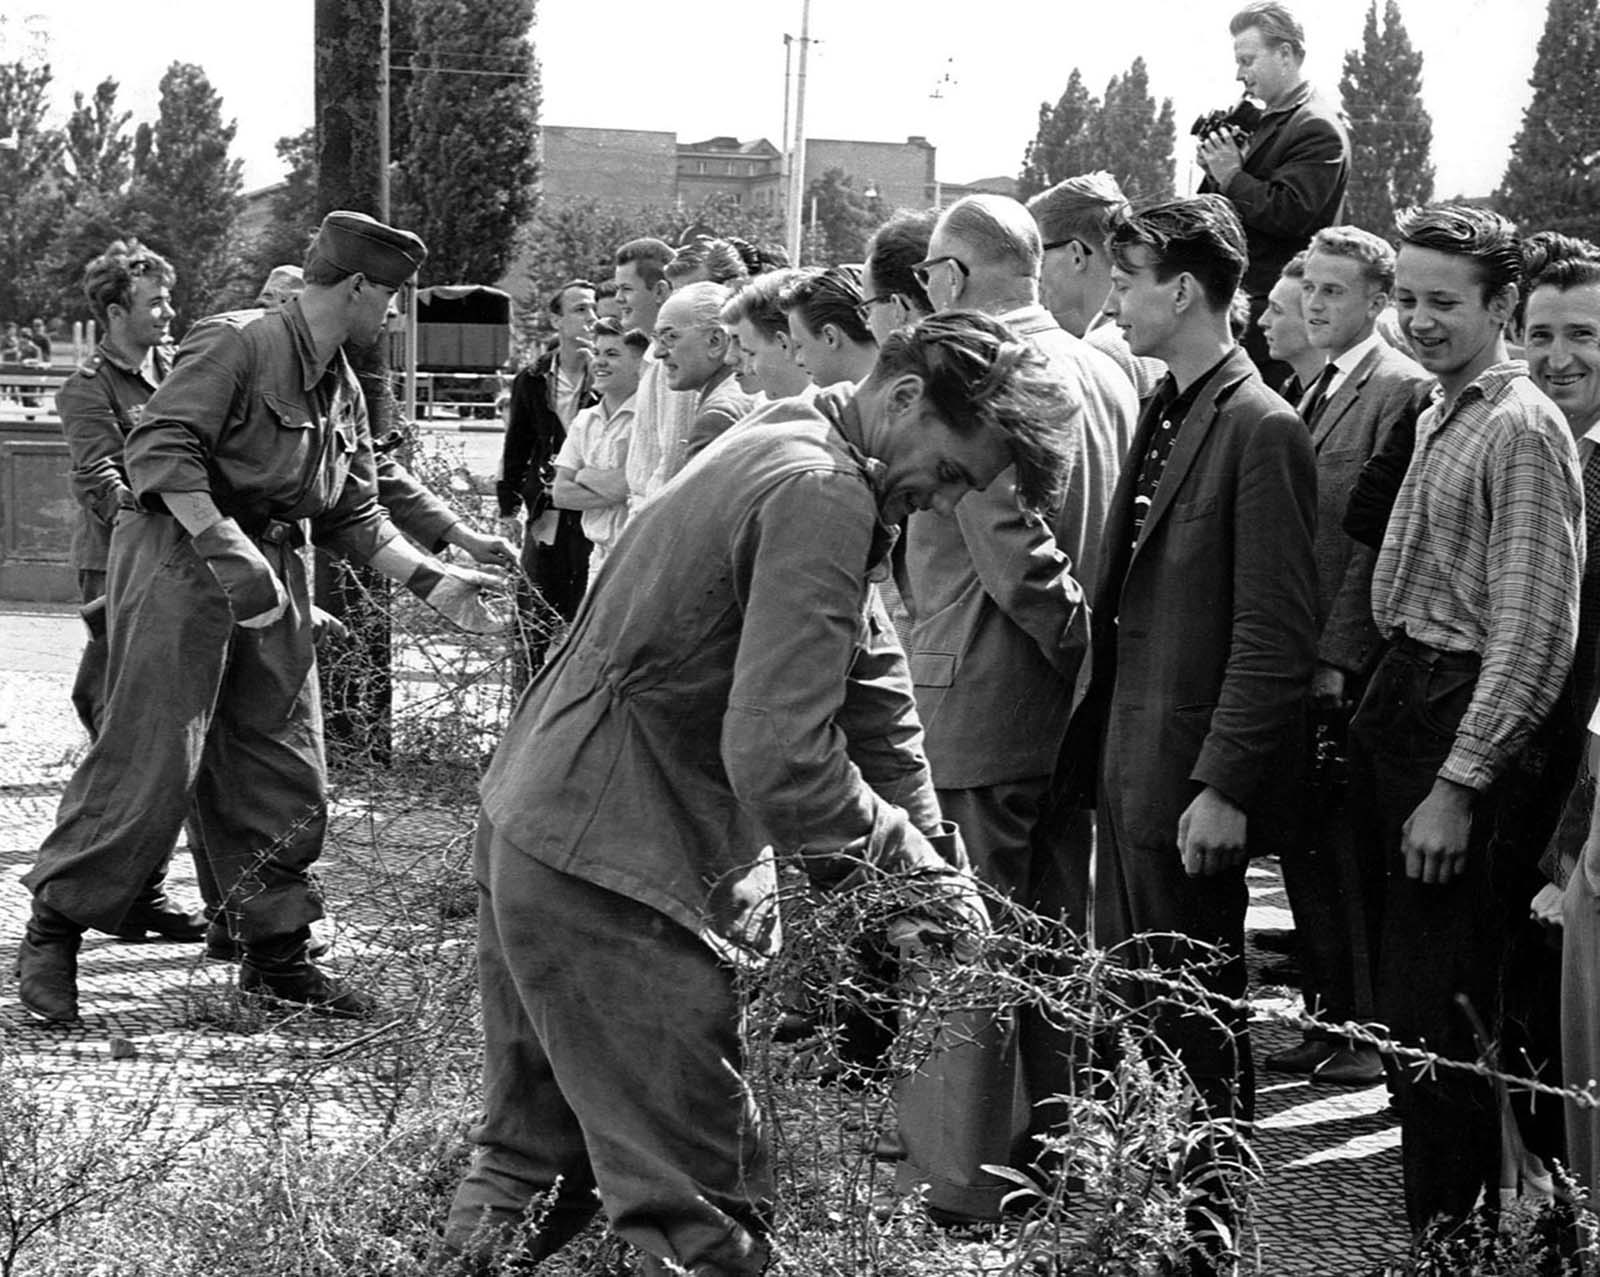 East German soldiers, left, set up barbed-wire barricades at the border separating East and West Berlin on August 13, 1961. West Berlin citizens, right, watch the work.